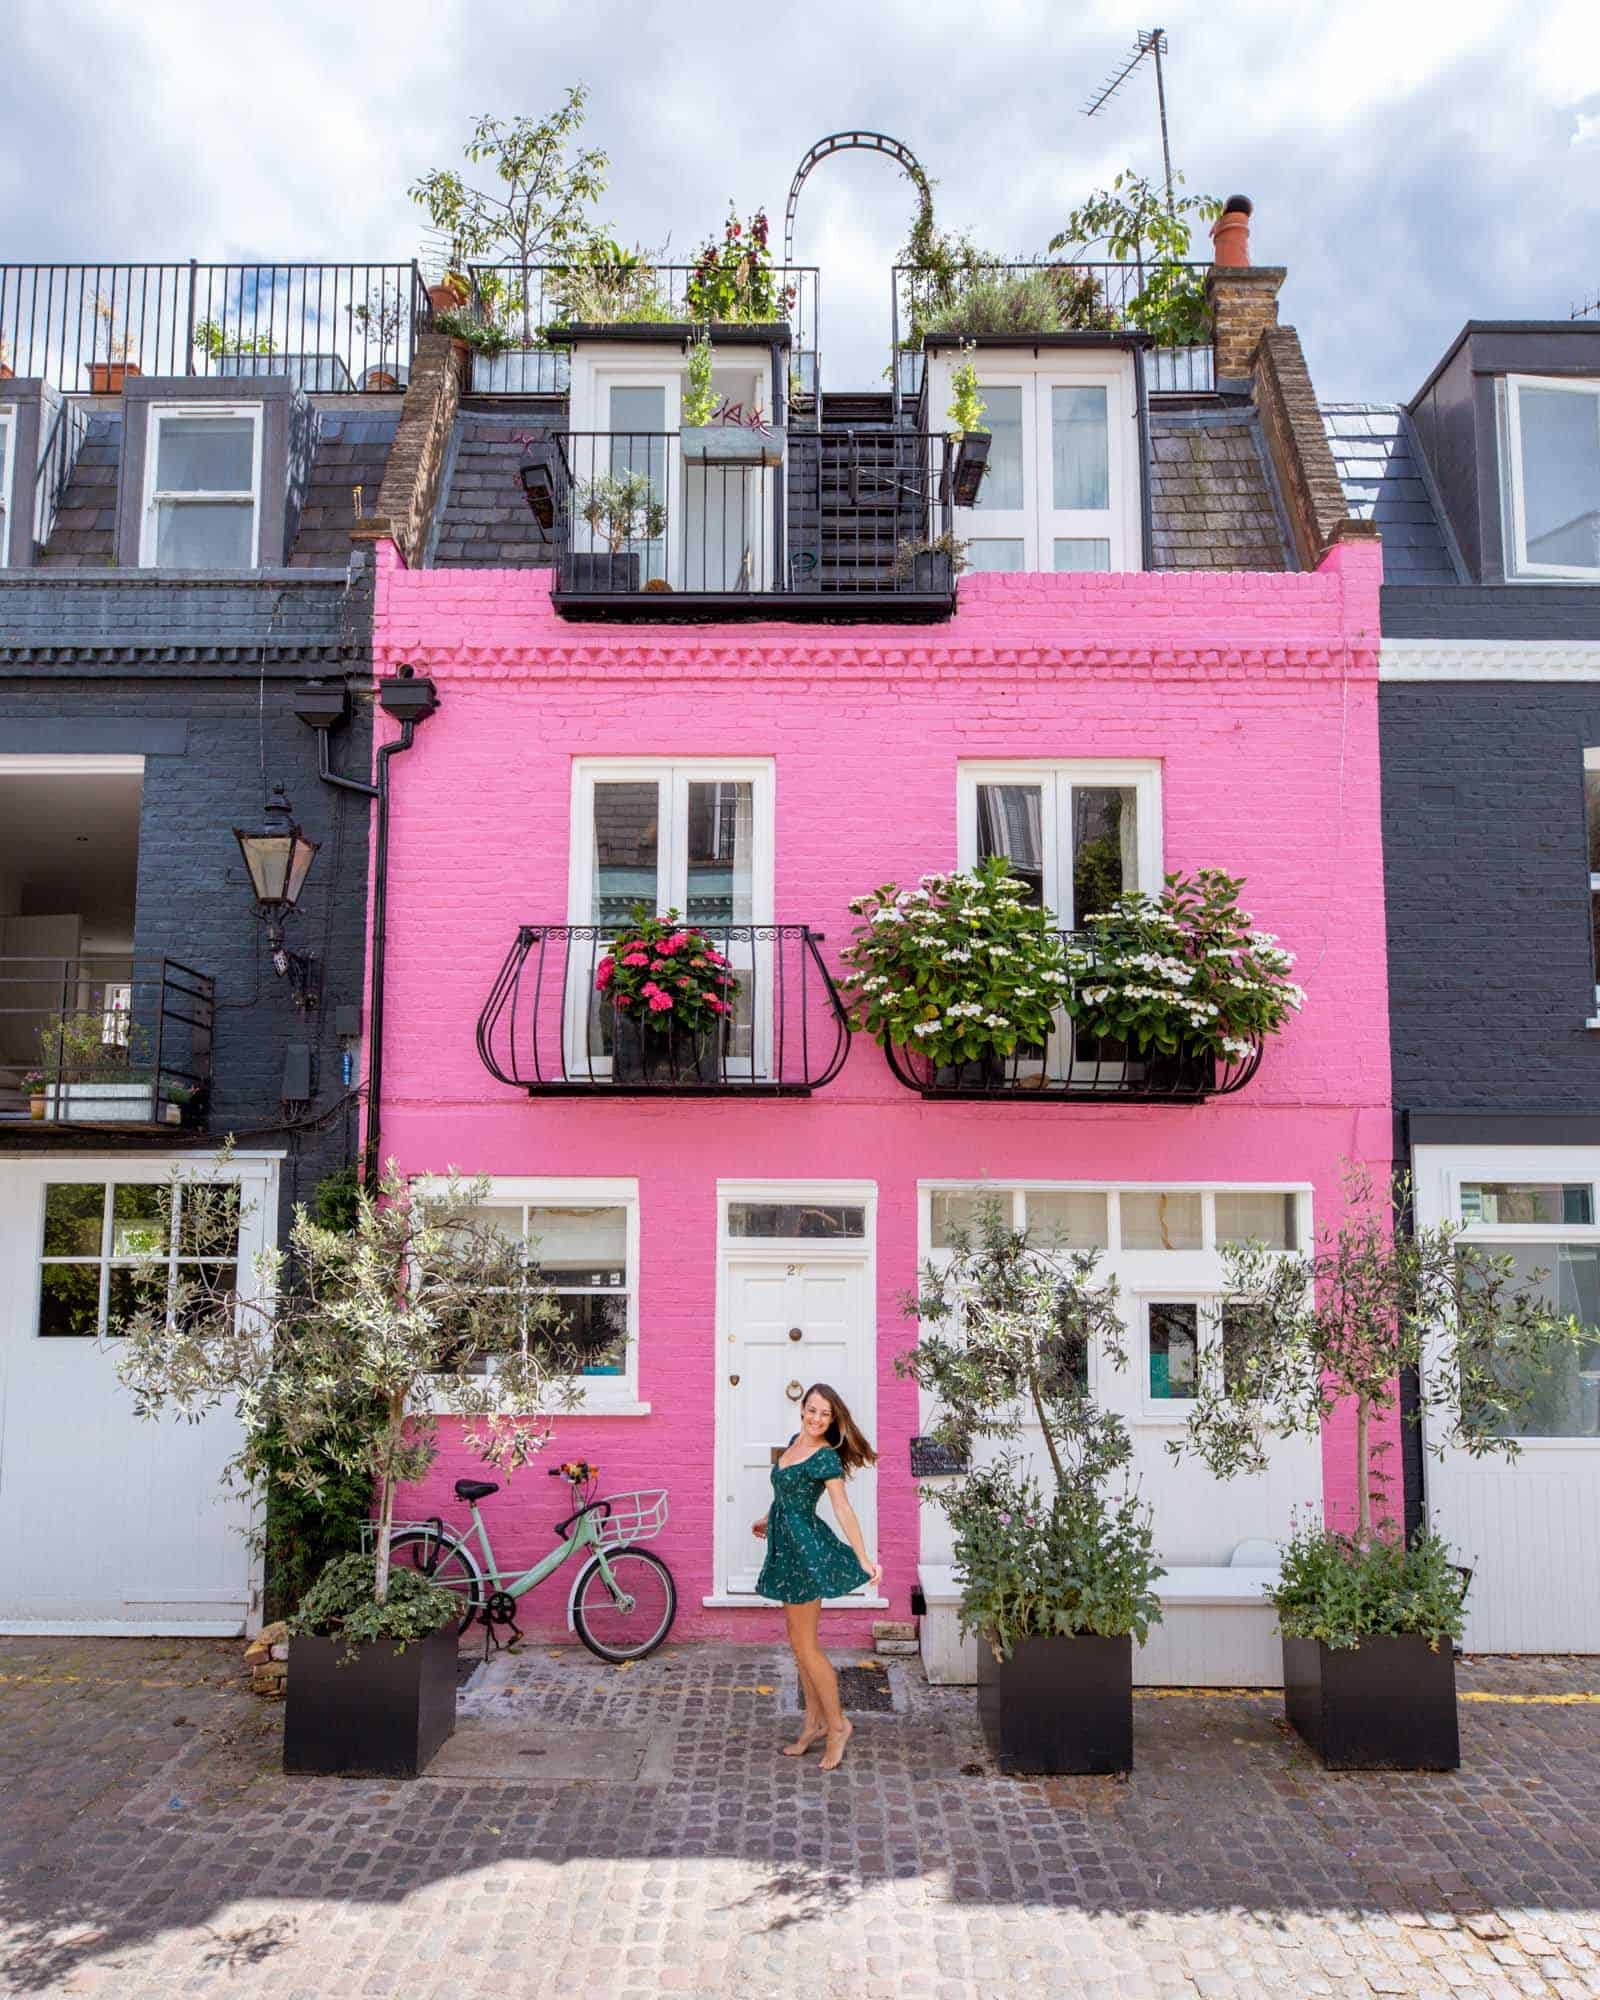 One of the most instagrammed houses: the colorful St Lukes Mews, Notting Hill, London